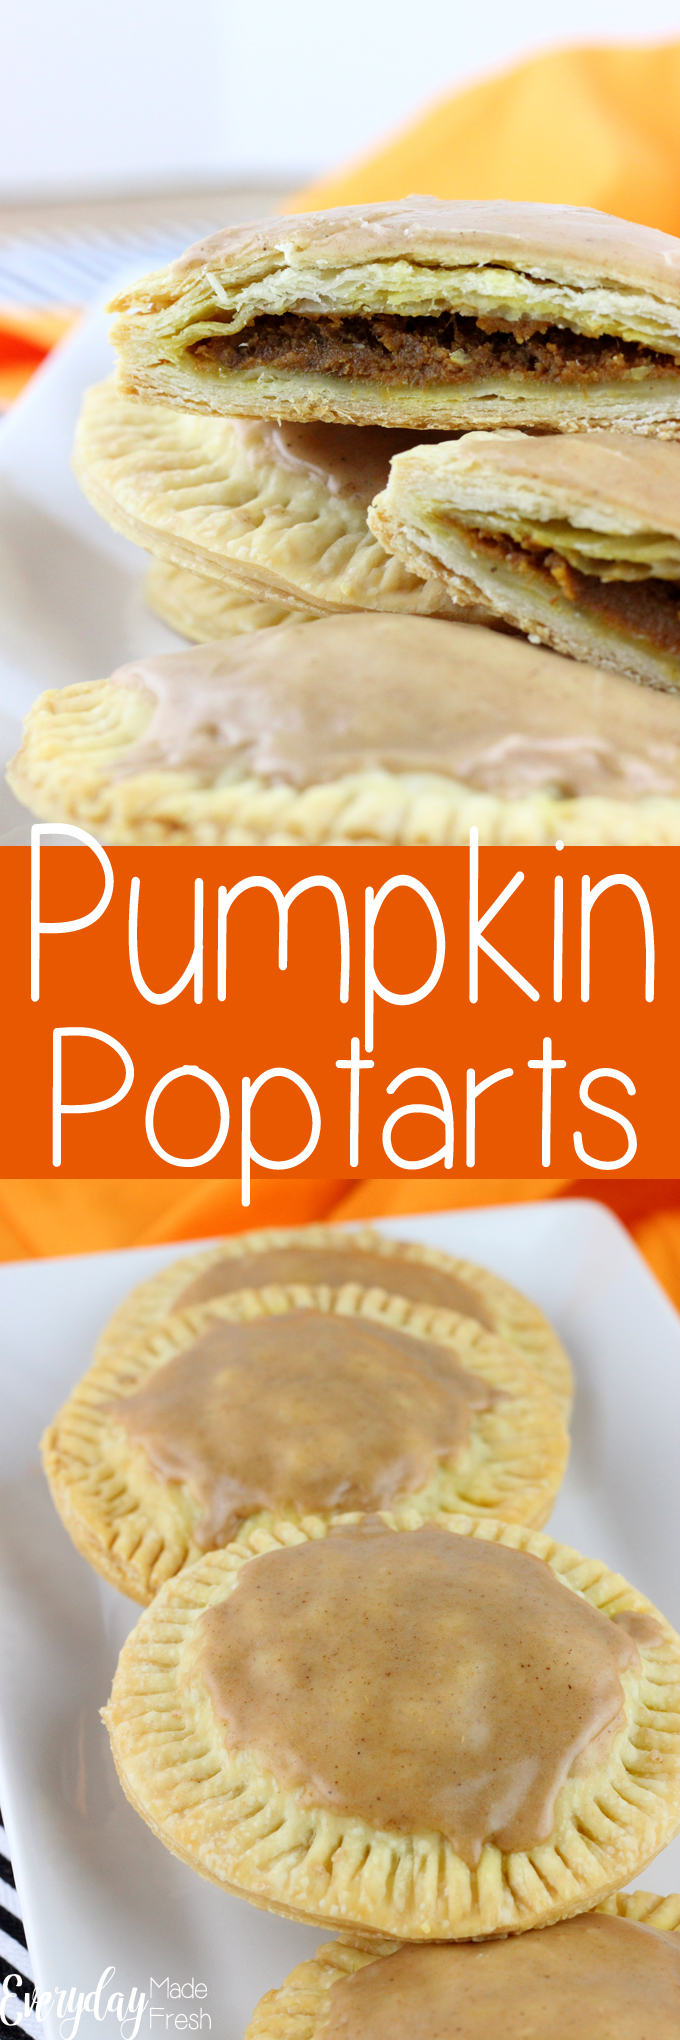 Using store bought pie dough, you can create these Pumpkin Poptarts anytime of the year! They are simple to make, and better for you than store bought. | EverydayMadeFresh.com